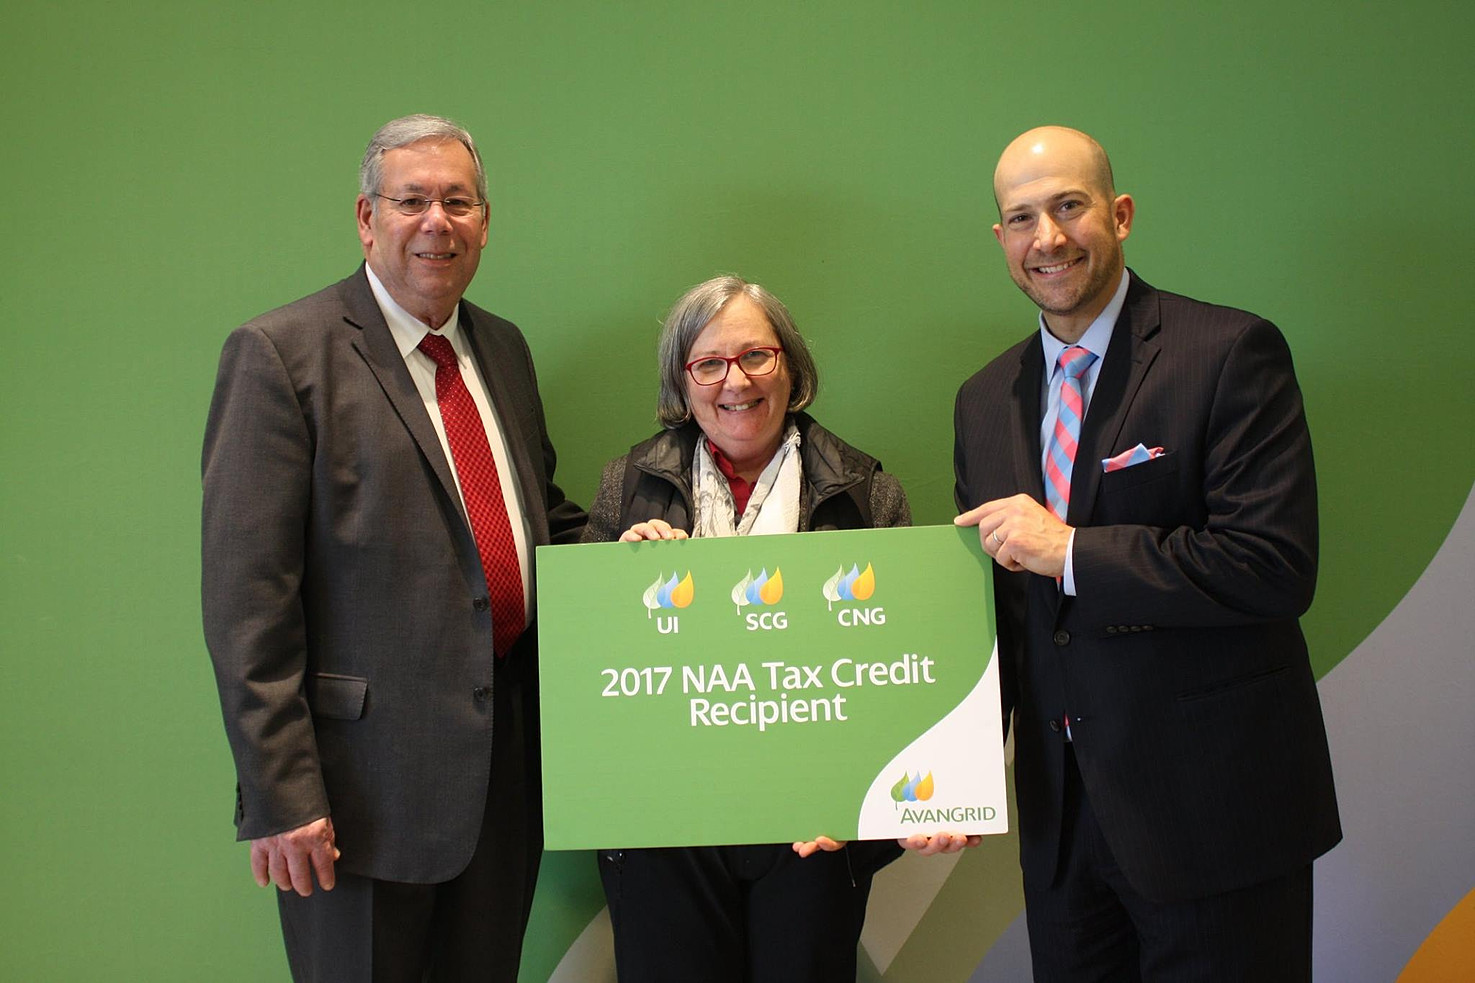 Neighborhood Housing Services are the Recipient of 2017 NAA Tax Credit Recipient